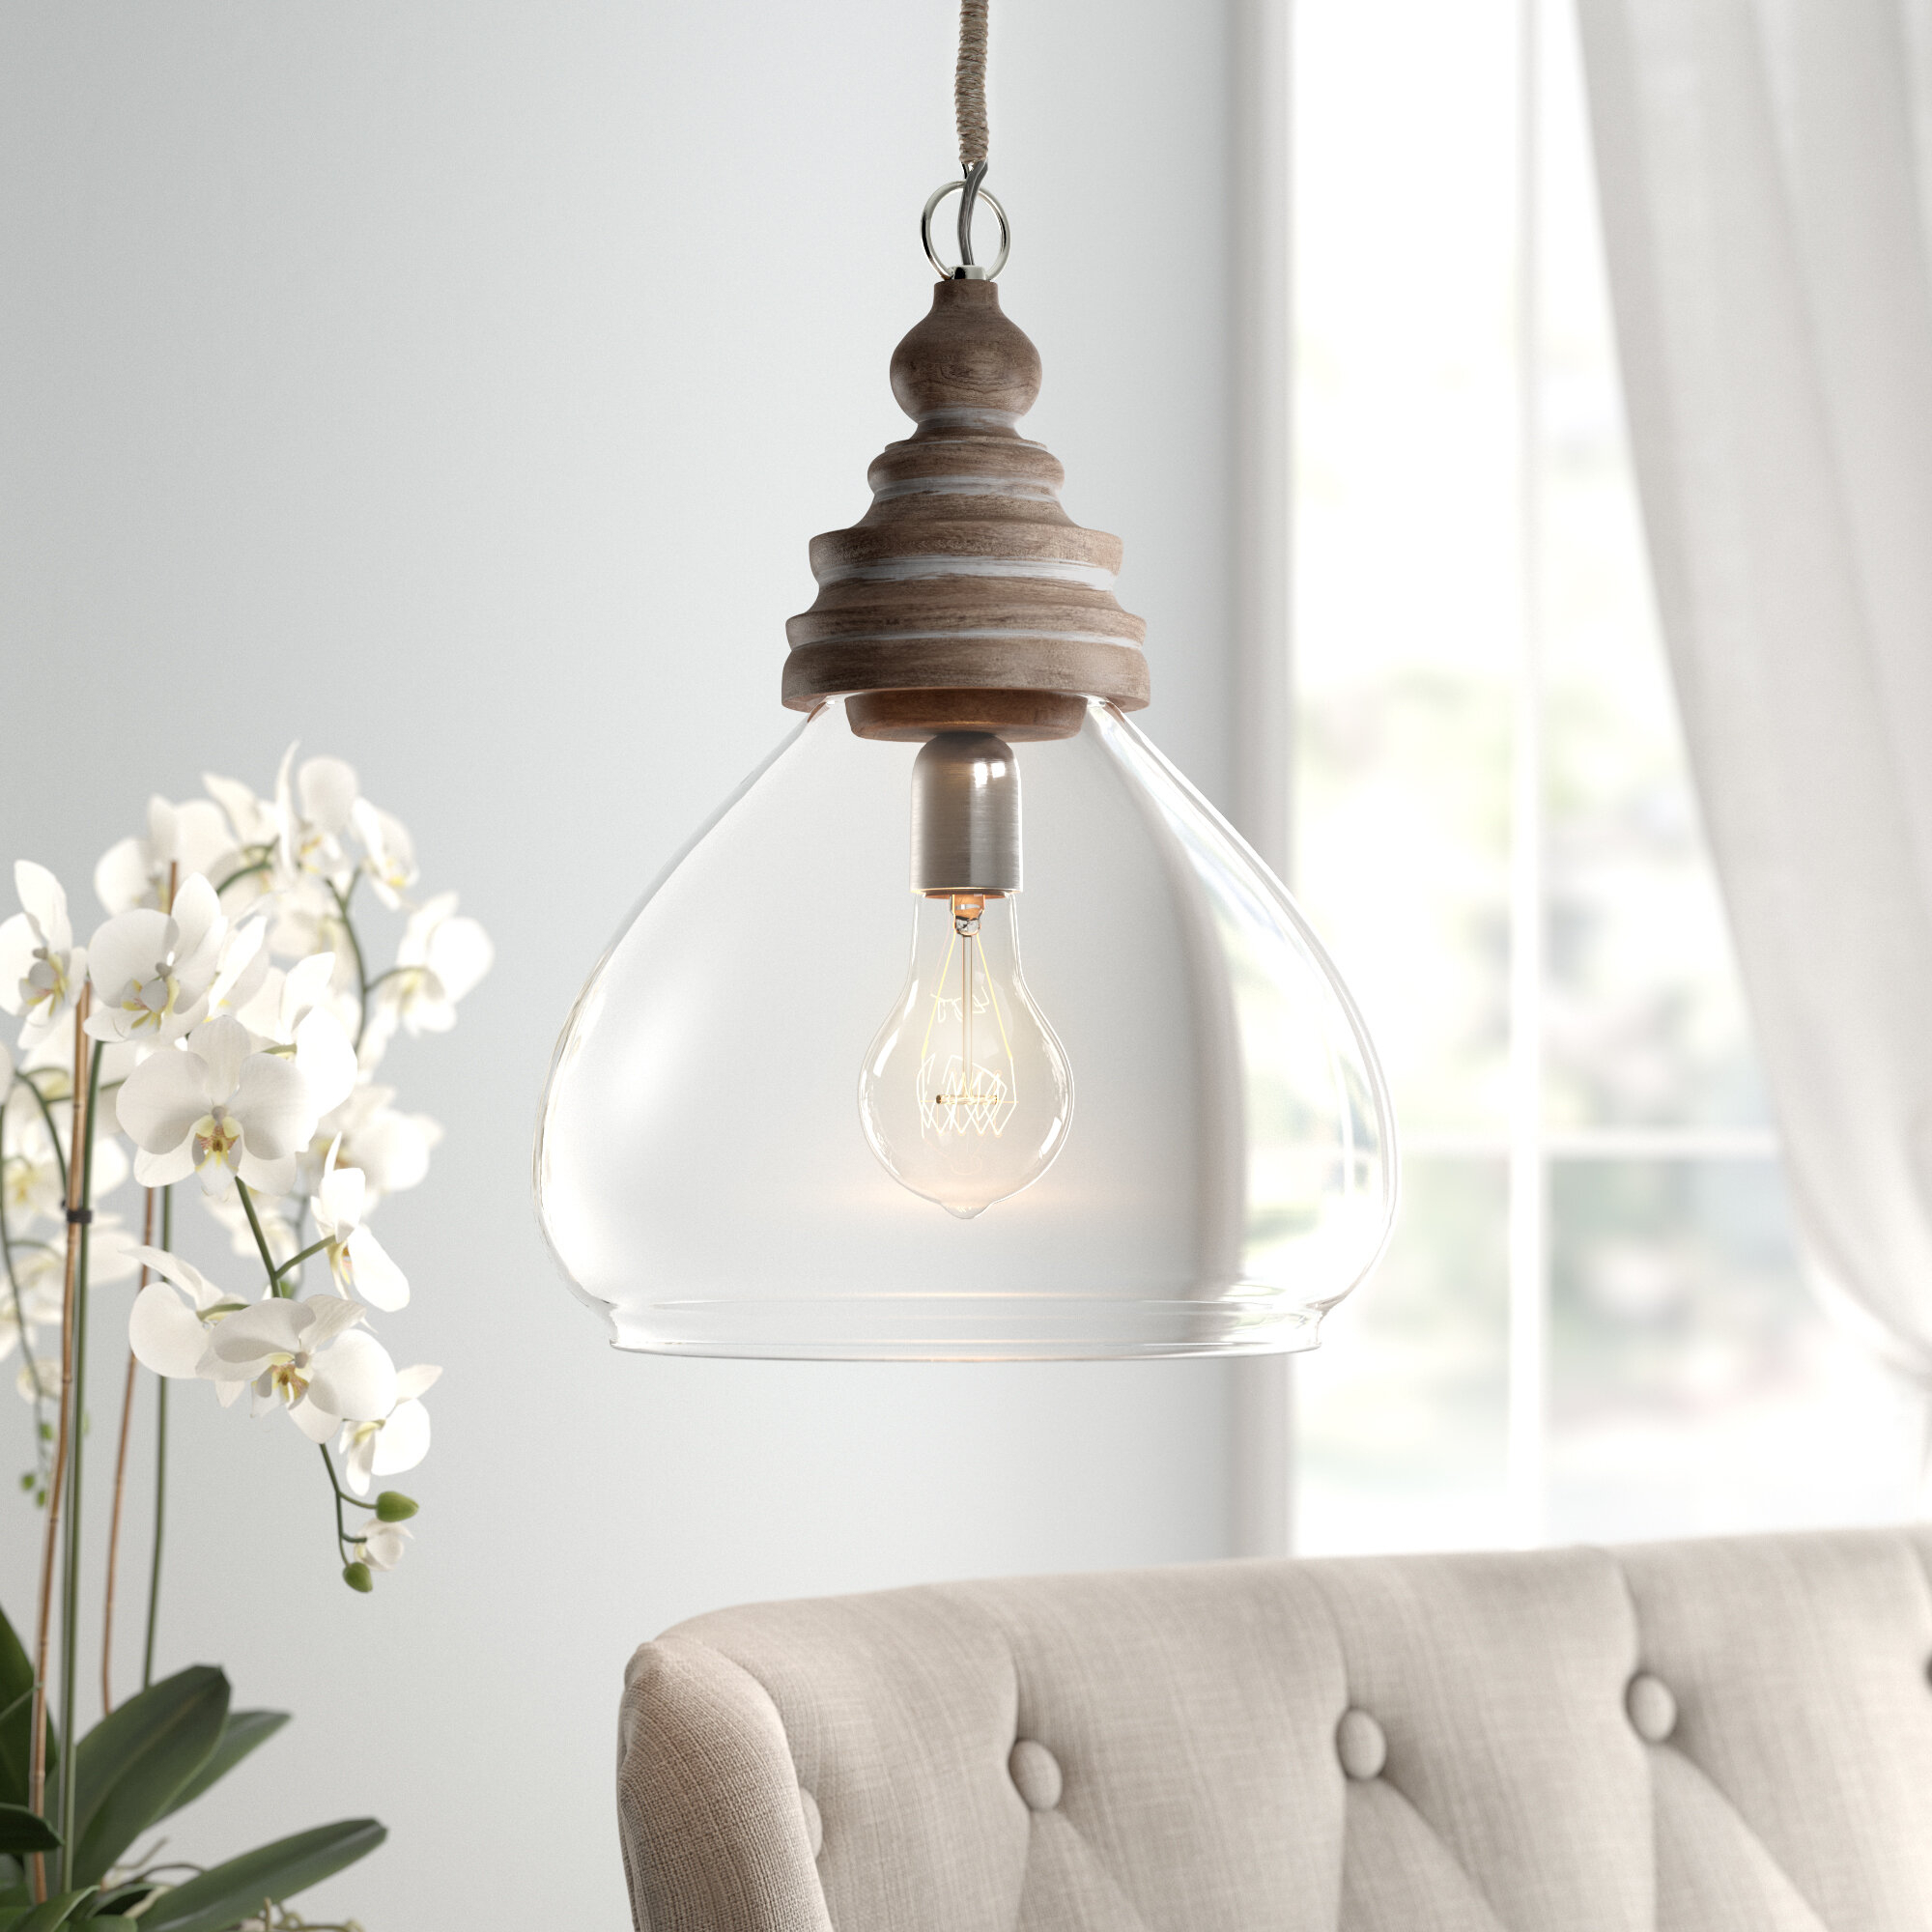 Brisa 1 Light Single Dome Pendant With Regard To Moyer 1 Light Single Cylinder Pendants (View 10 of 30)